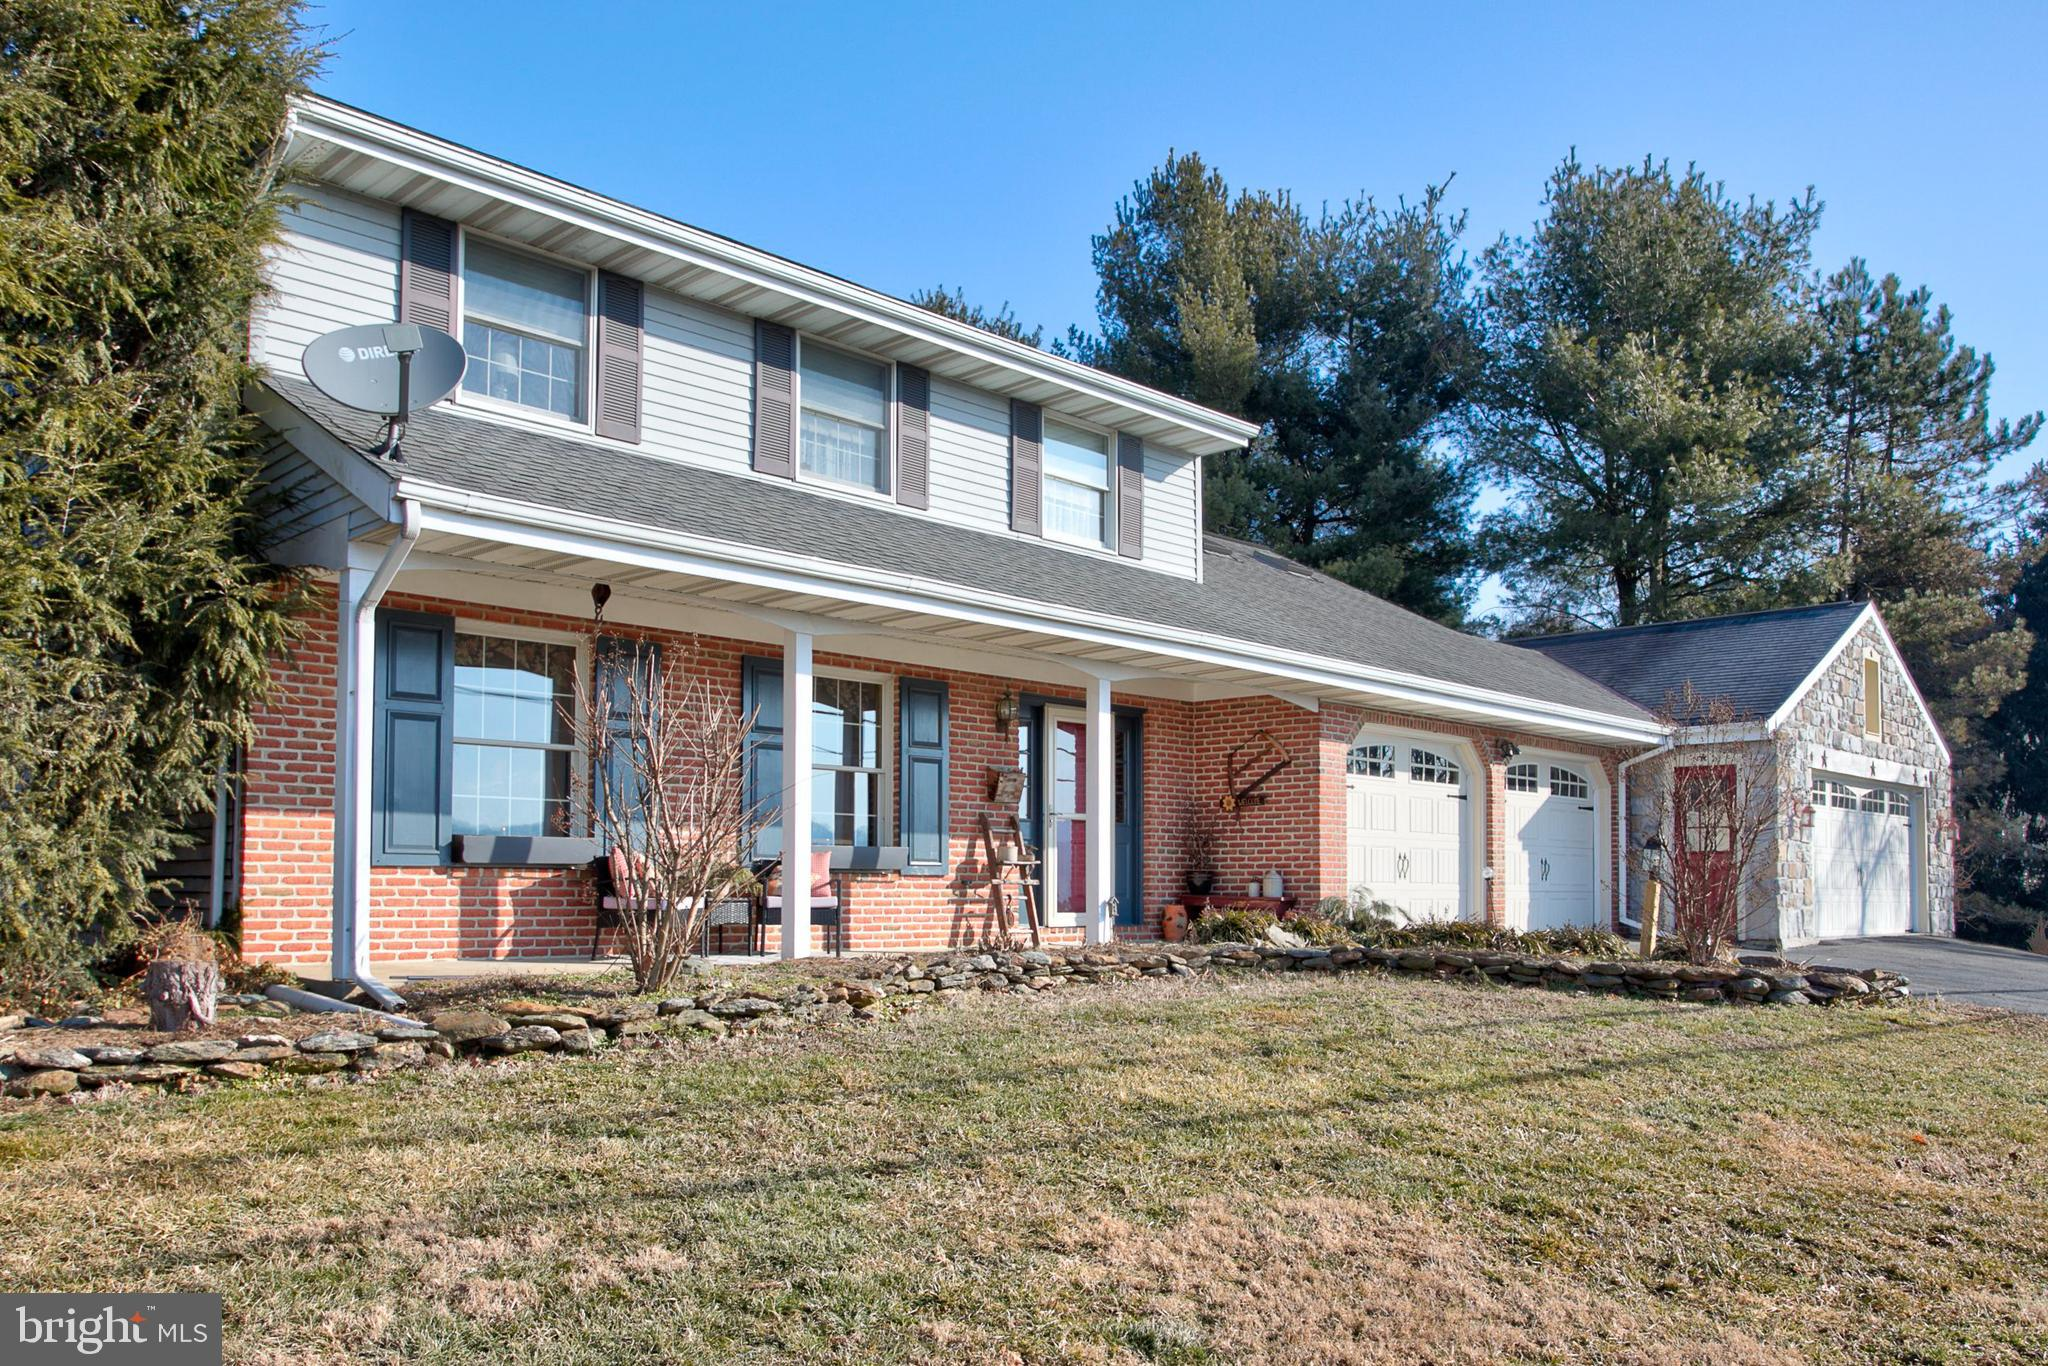 916 BYERLAND CHURCH ROAD, WILLOW STREET, PA 17584